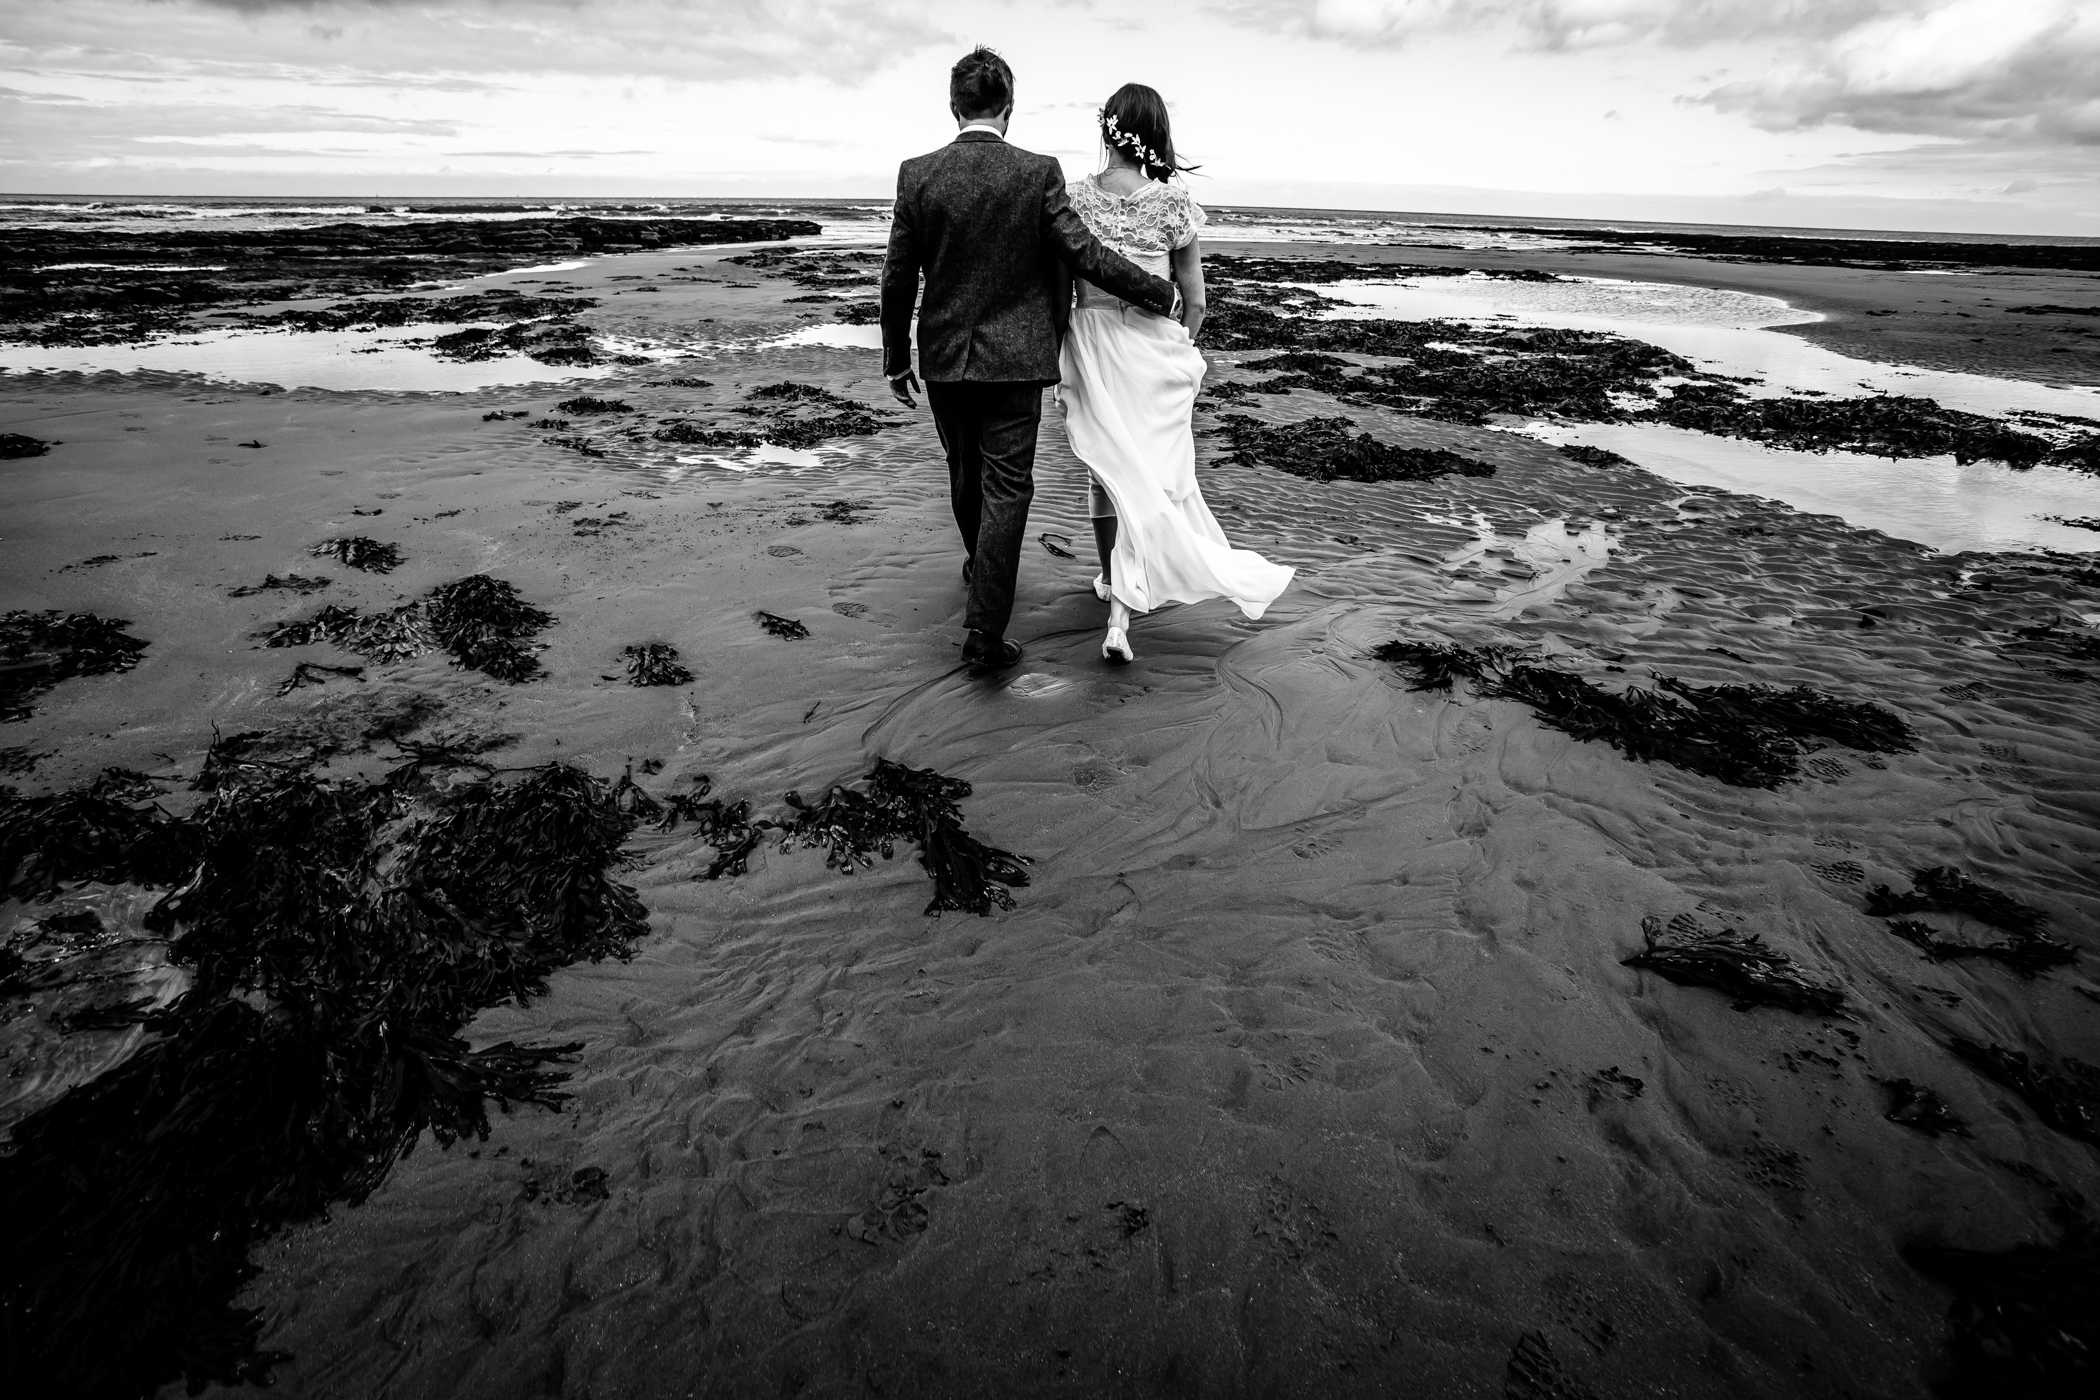 sansom photography beach wedding photography charlotte & mike-58